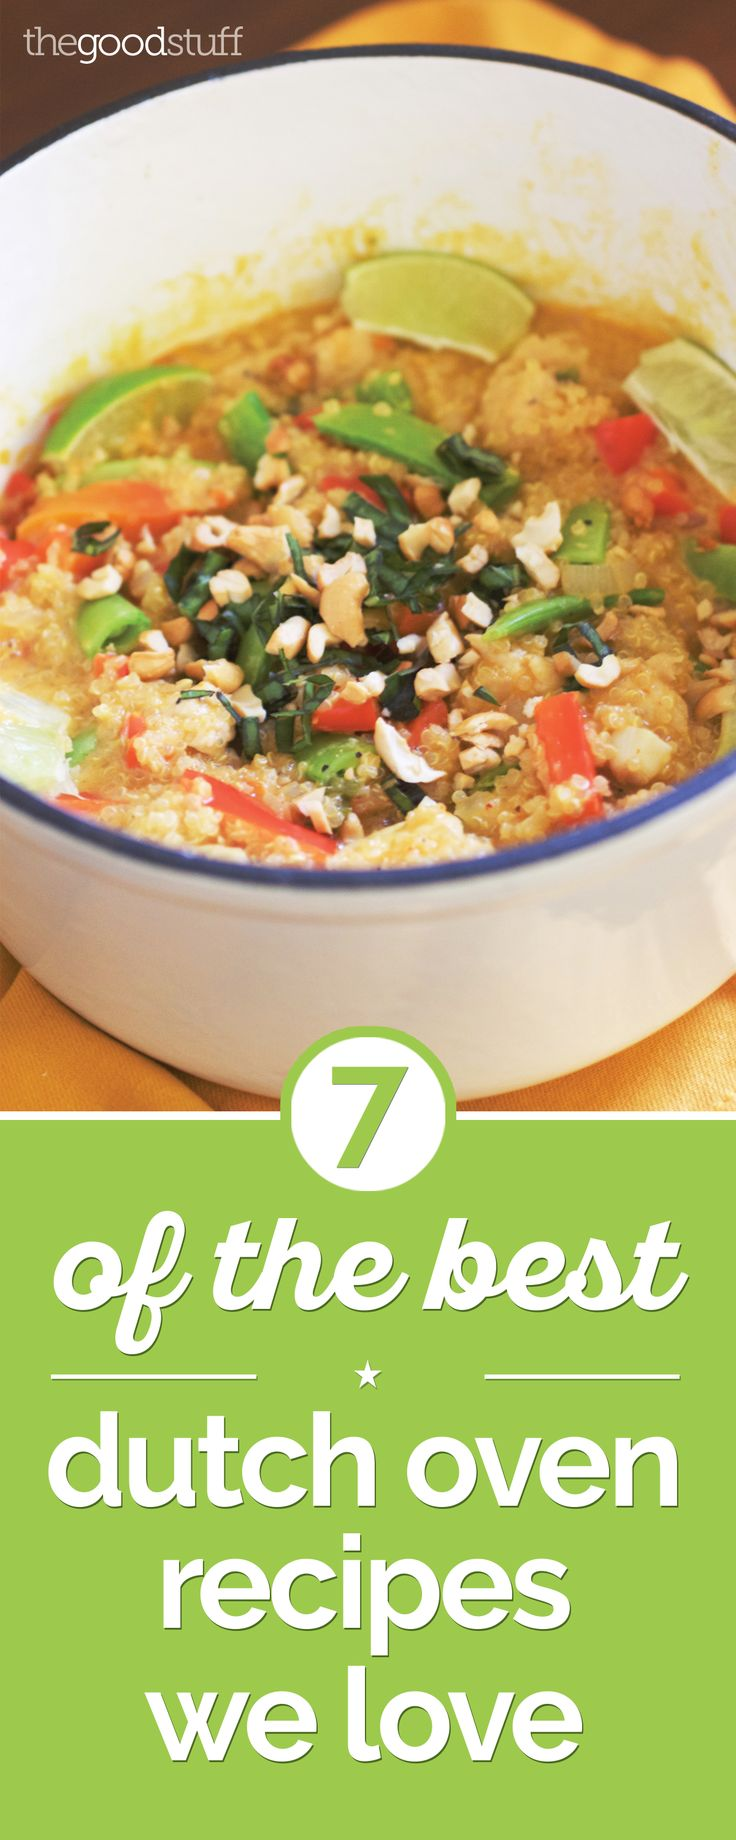 I love one-pot Dutch oven meals. They're easy to make and leave you with only one pot to clean at the end.